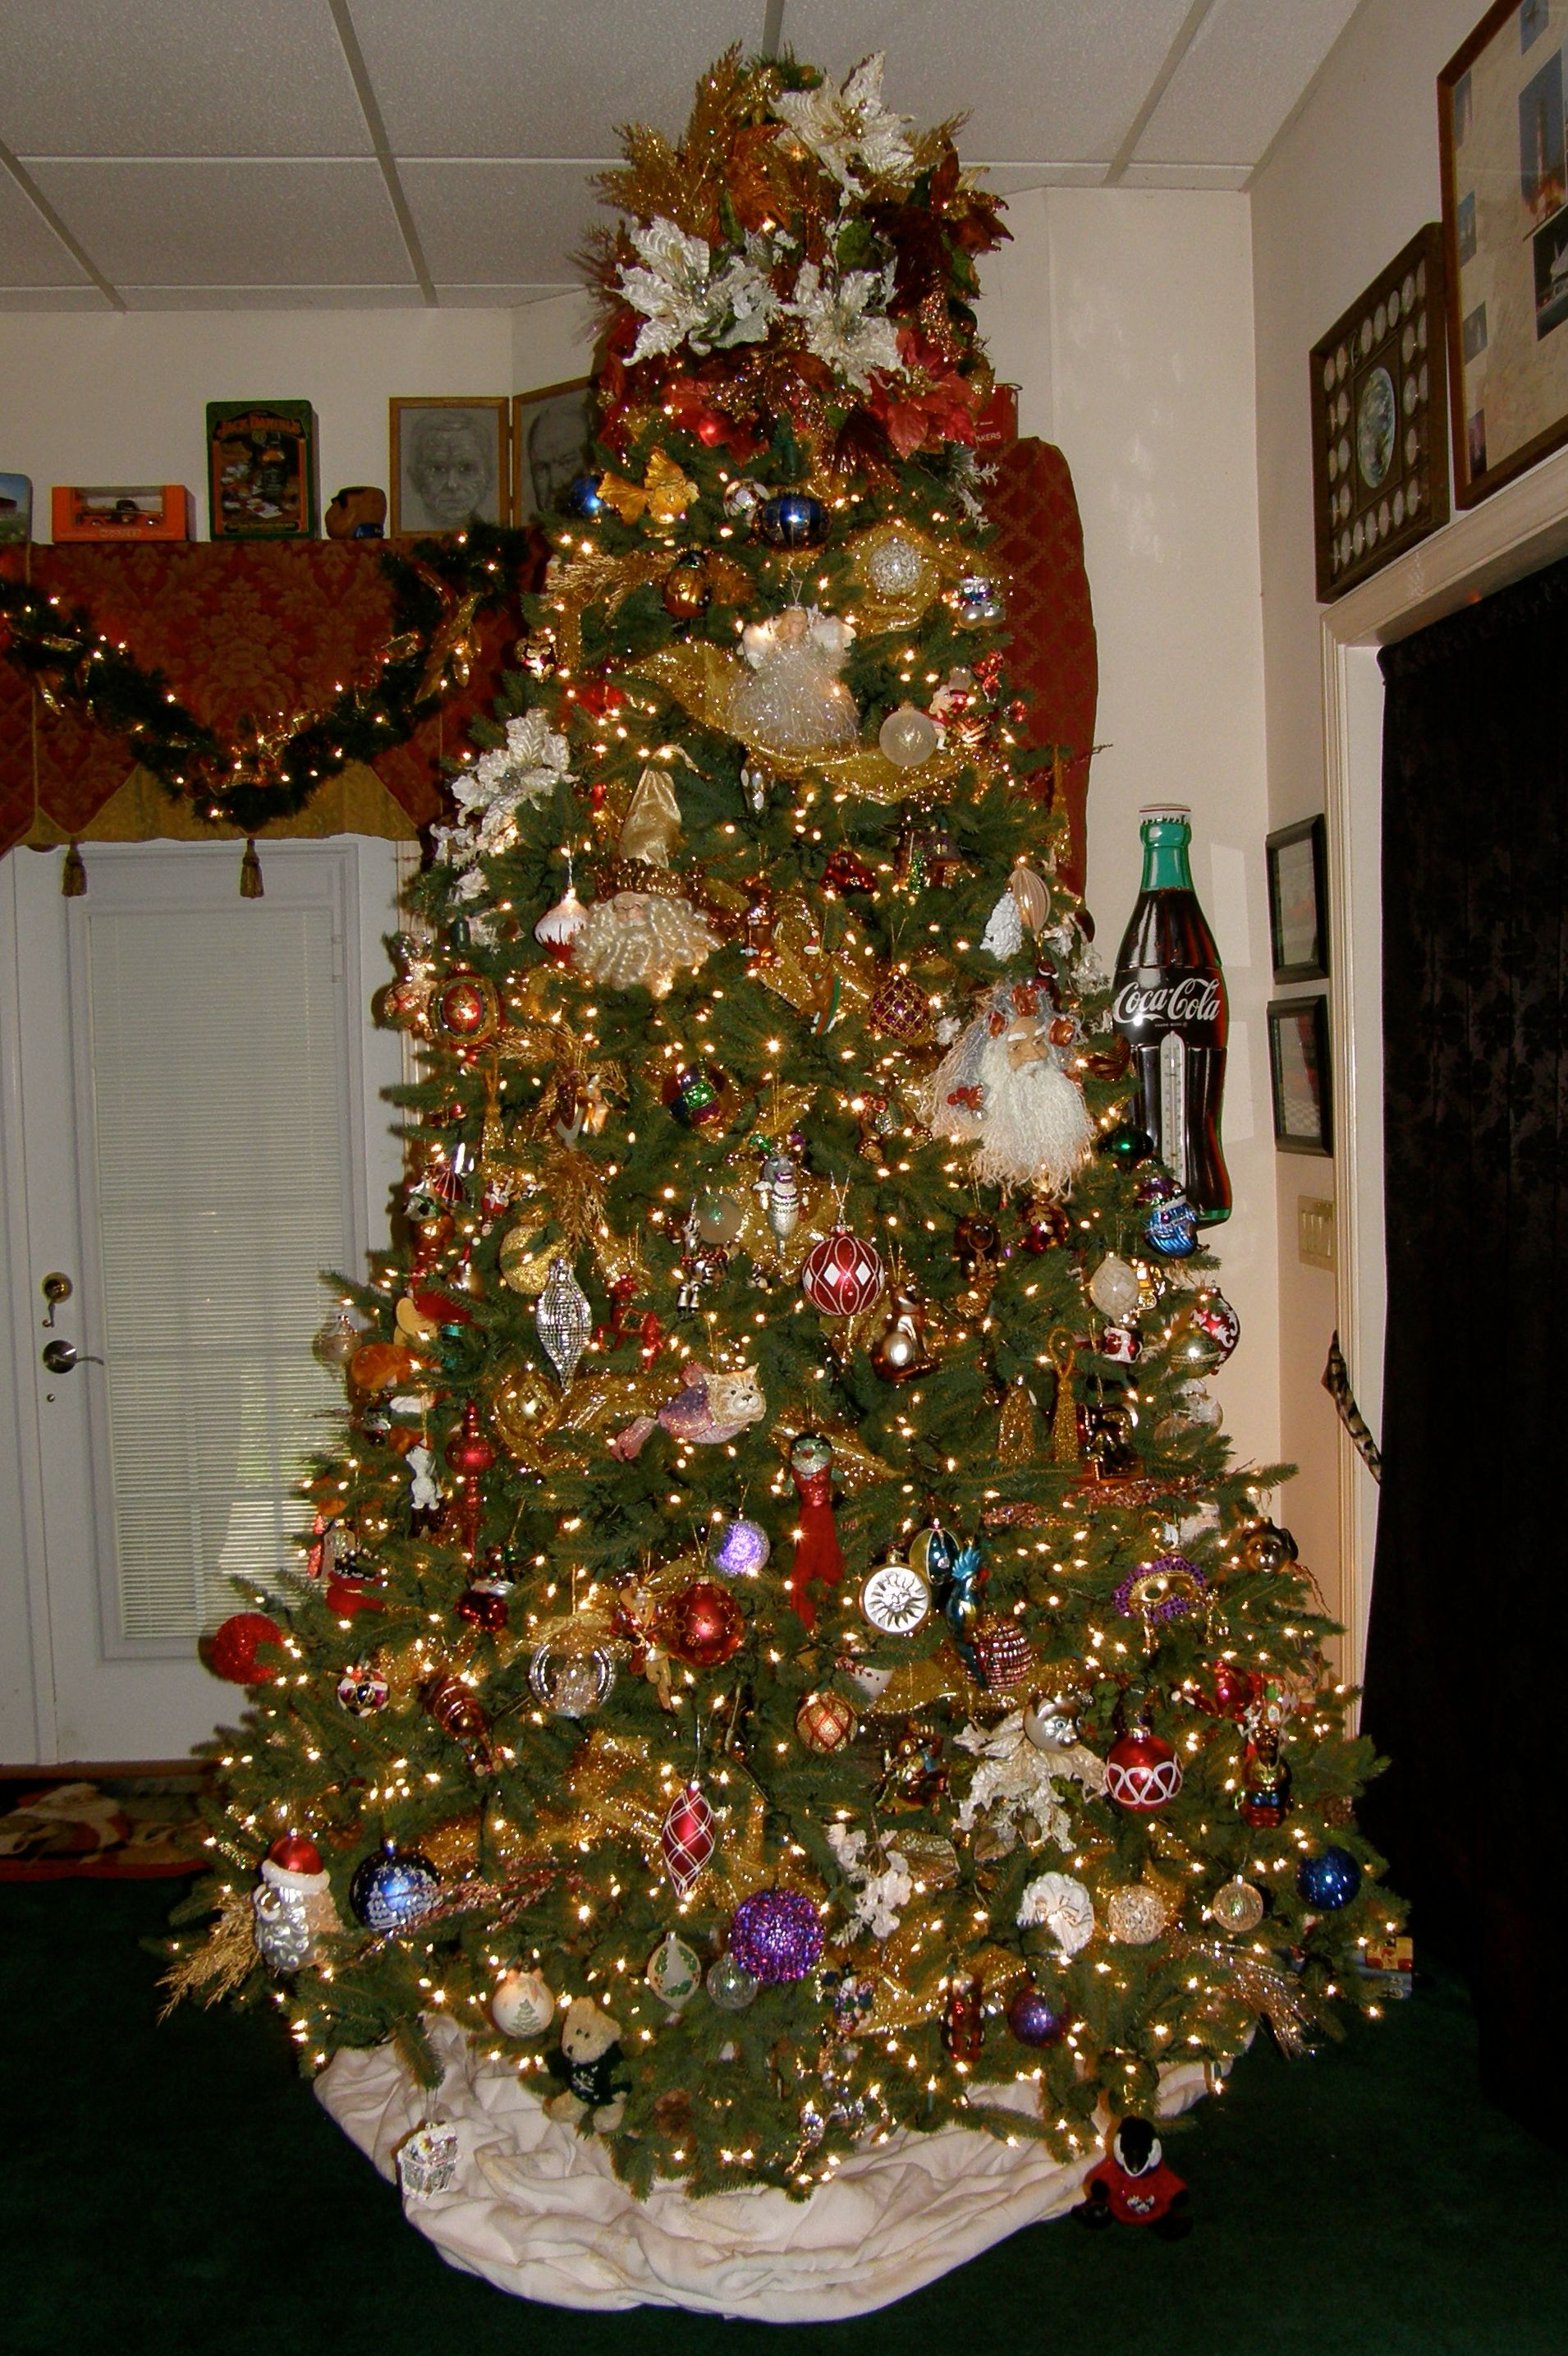 Christmas Tree Techneats: how do you decorate a christmas tree